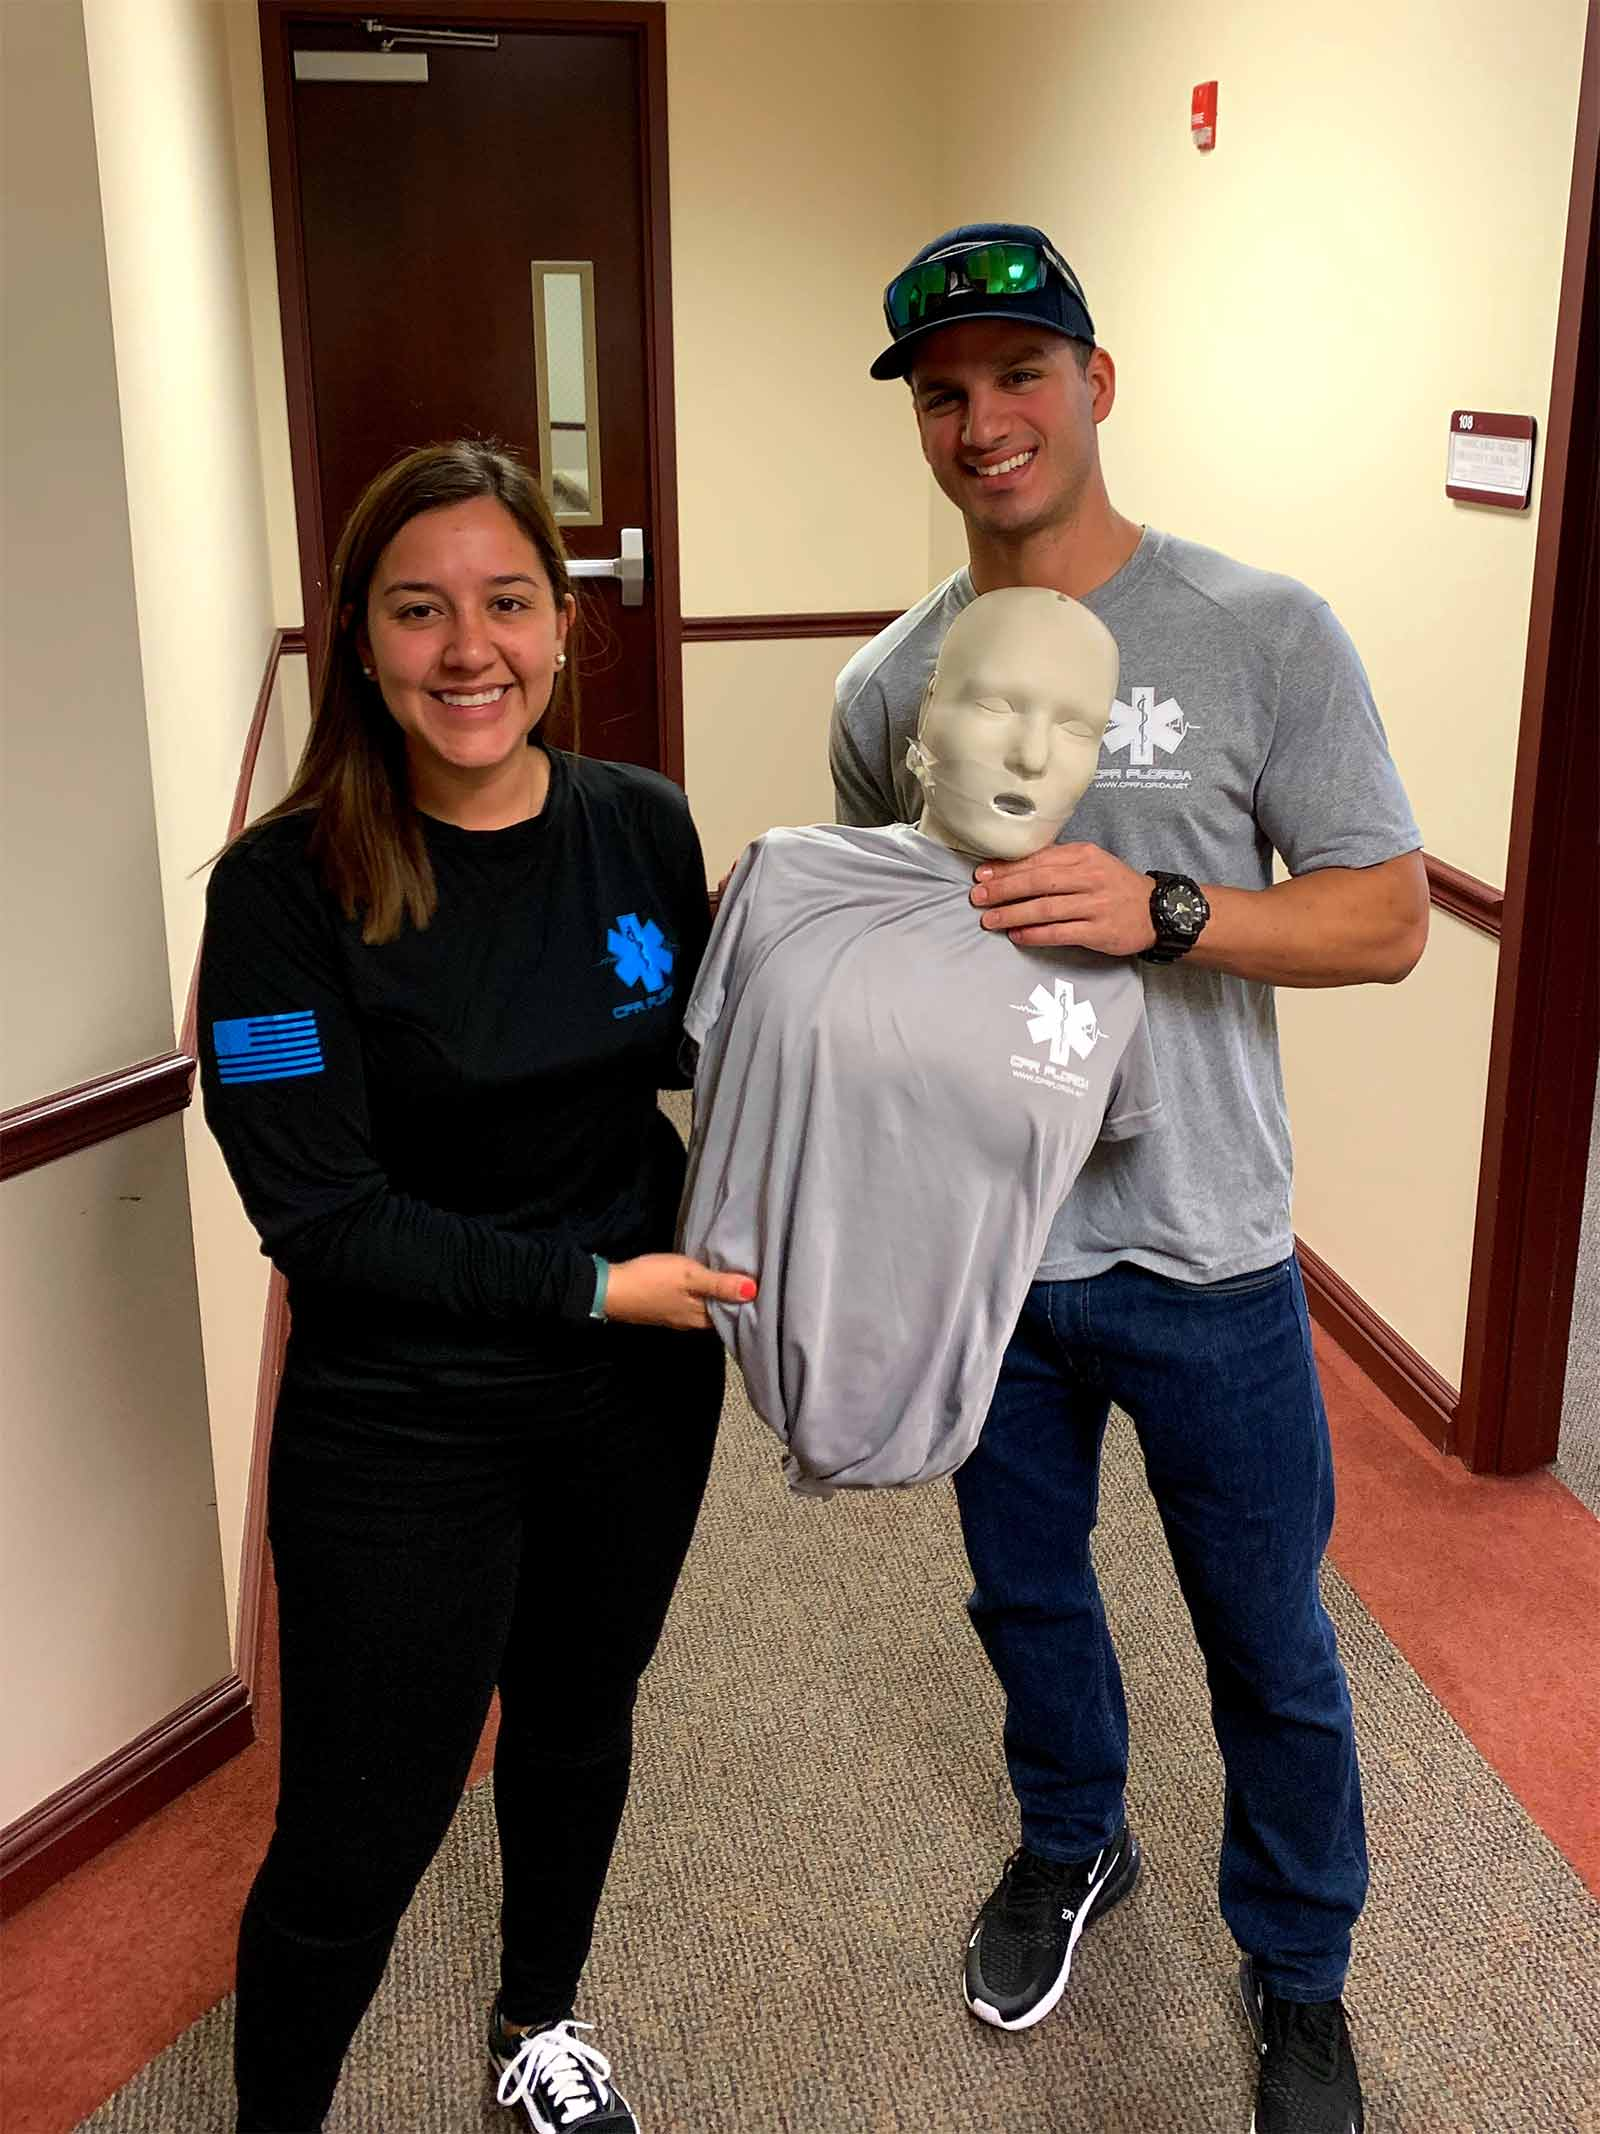 BLS Certification Classes - Sign up for American Heart ...